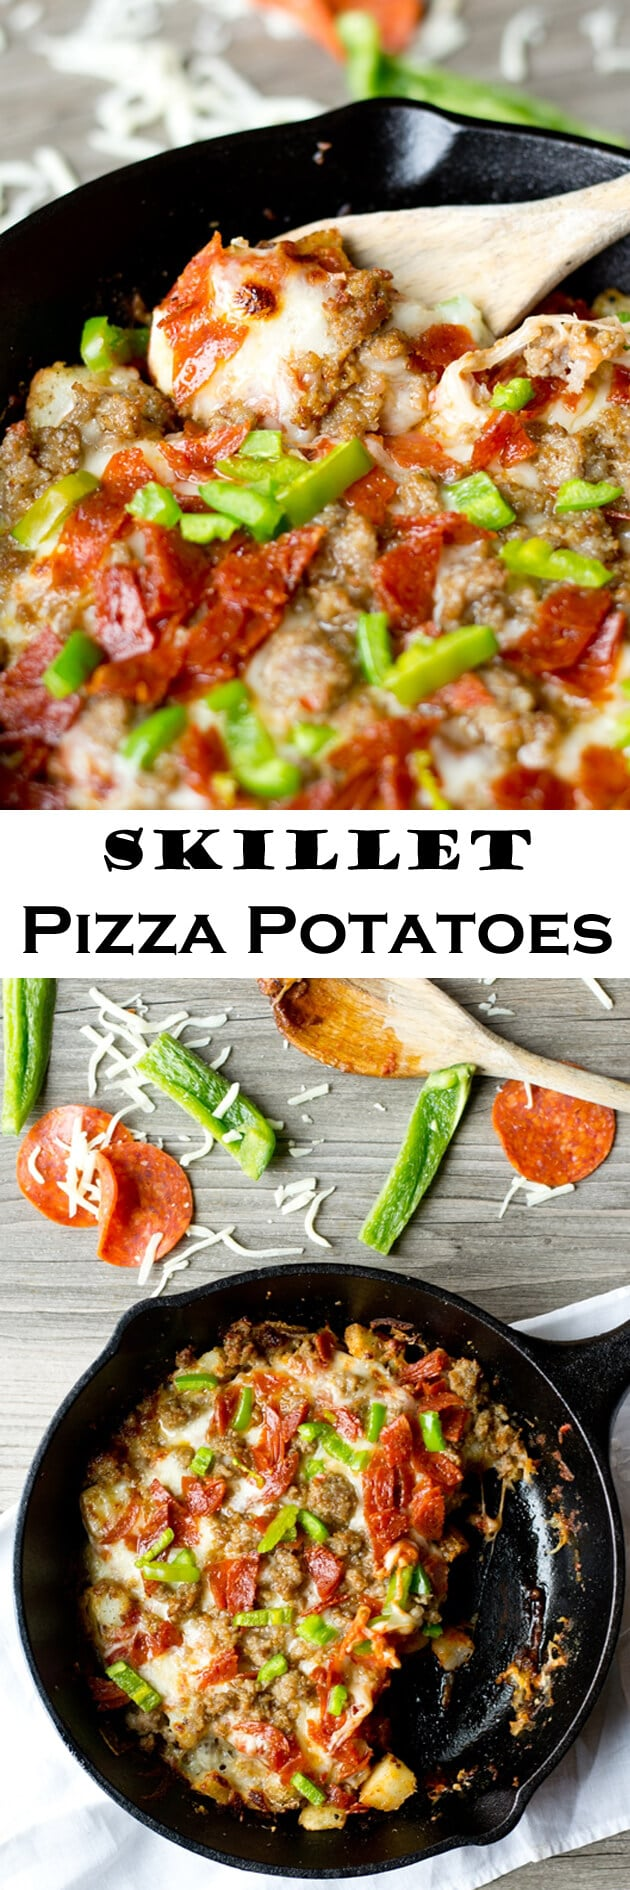 Skillet Pizza Potatoes 1